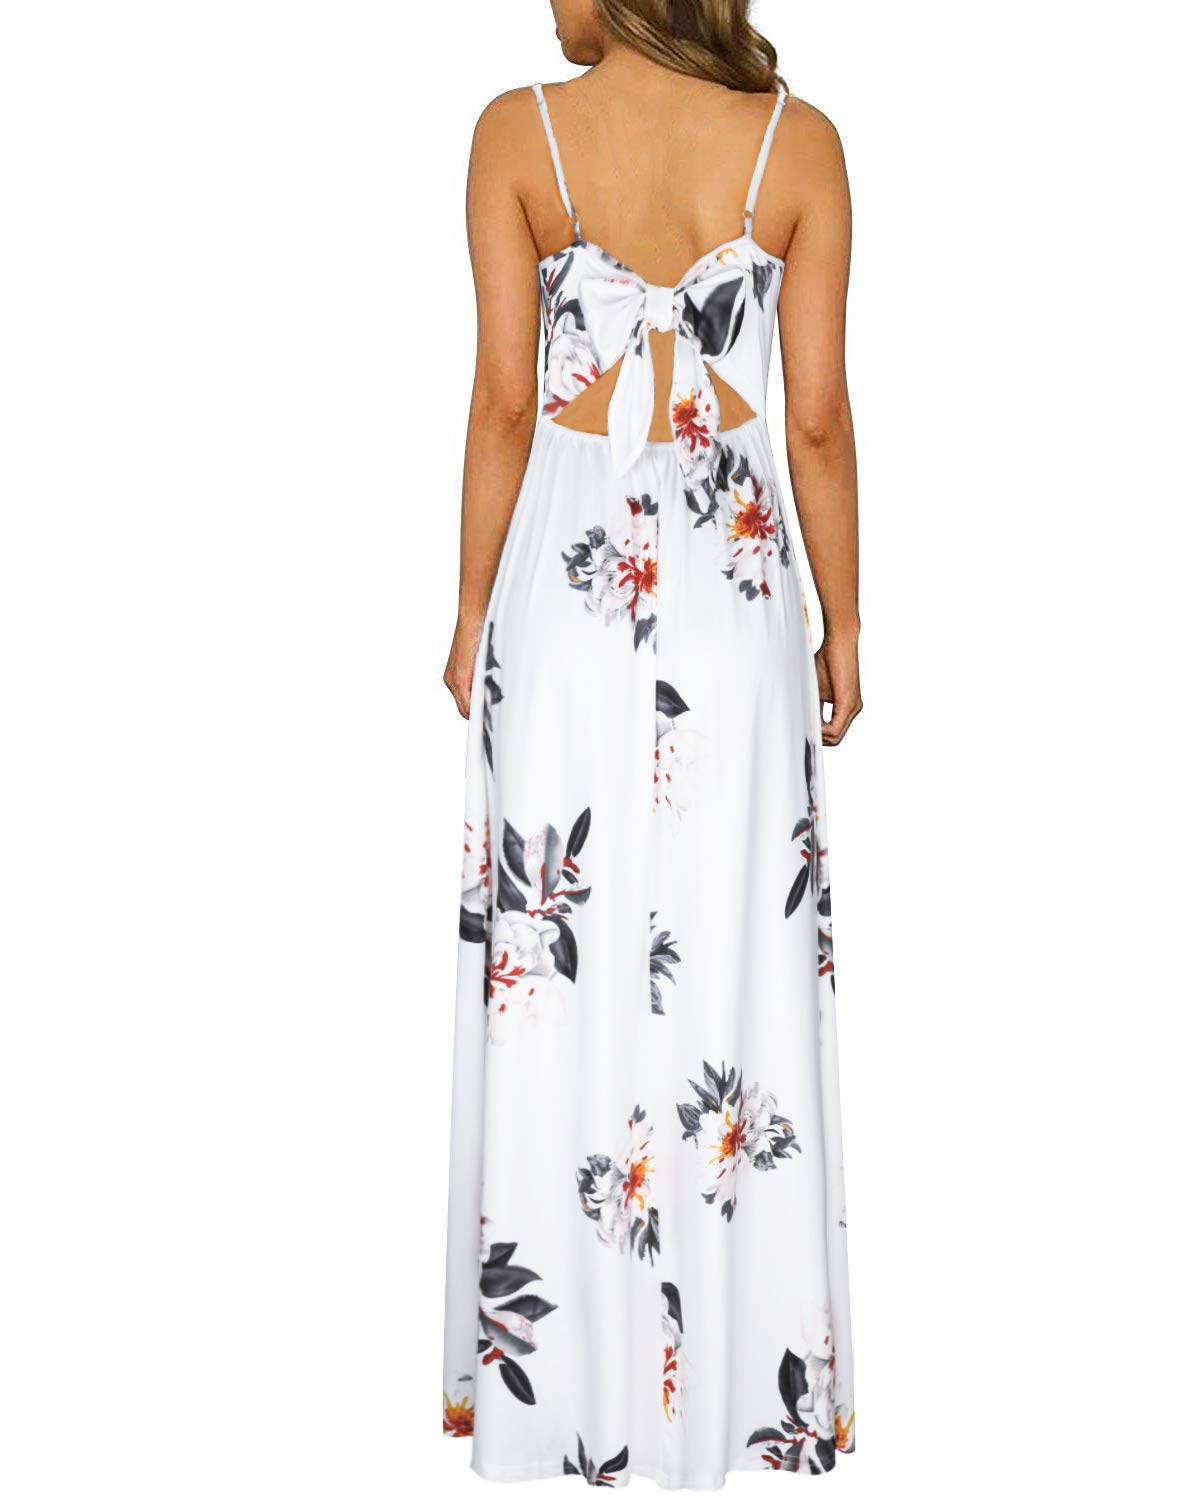 ULTRANICE Women's Summer Floral Backless Adjustable Spaghetti Strap Maxi Dress Split(Floral07,S) - wiihuu